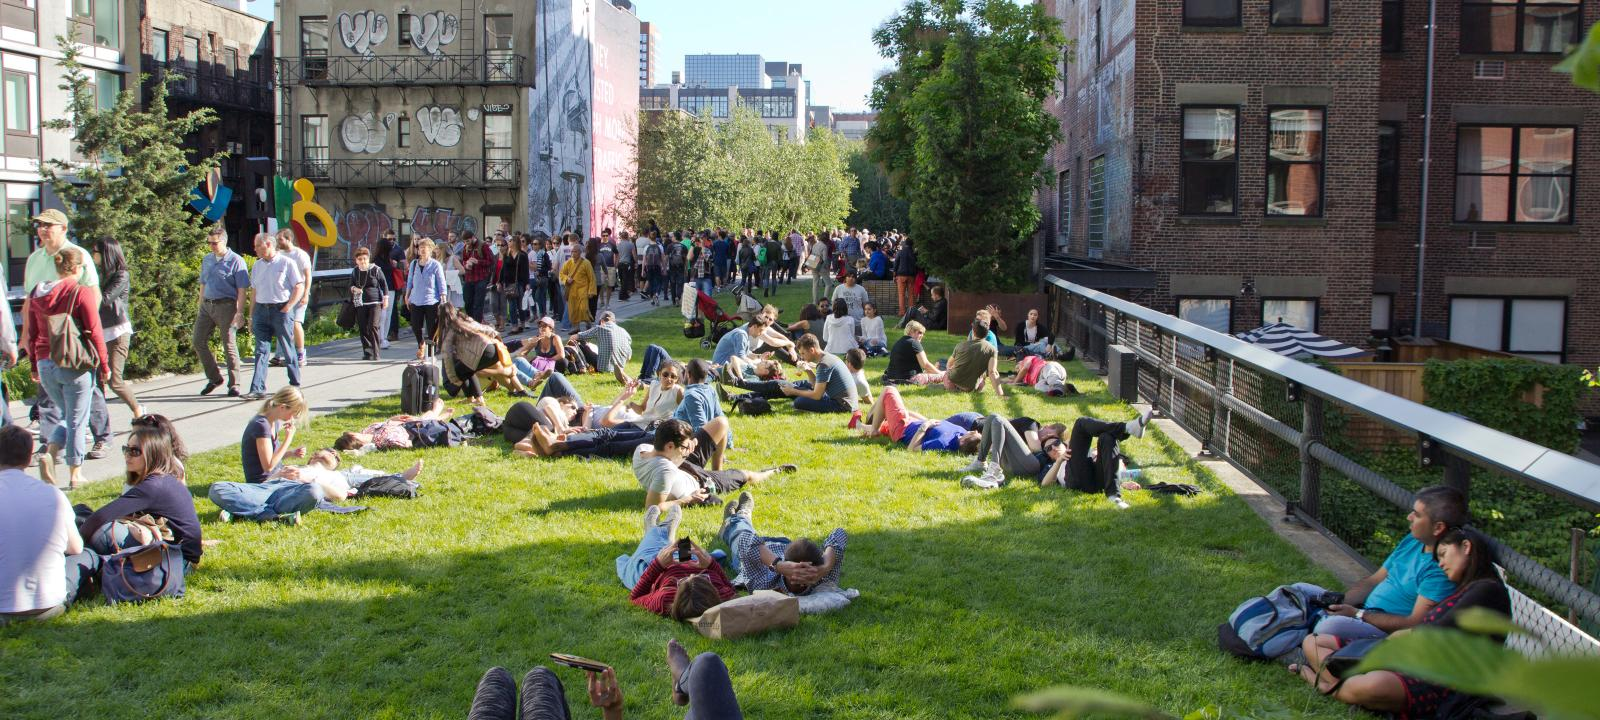 People sunbathing on a public lawn